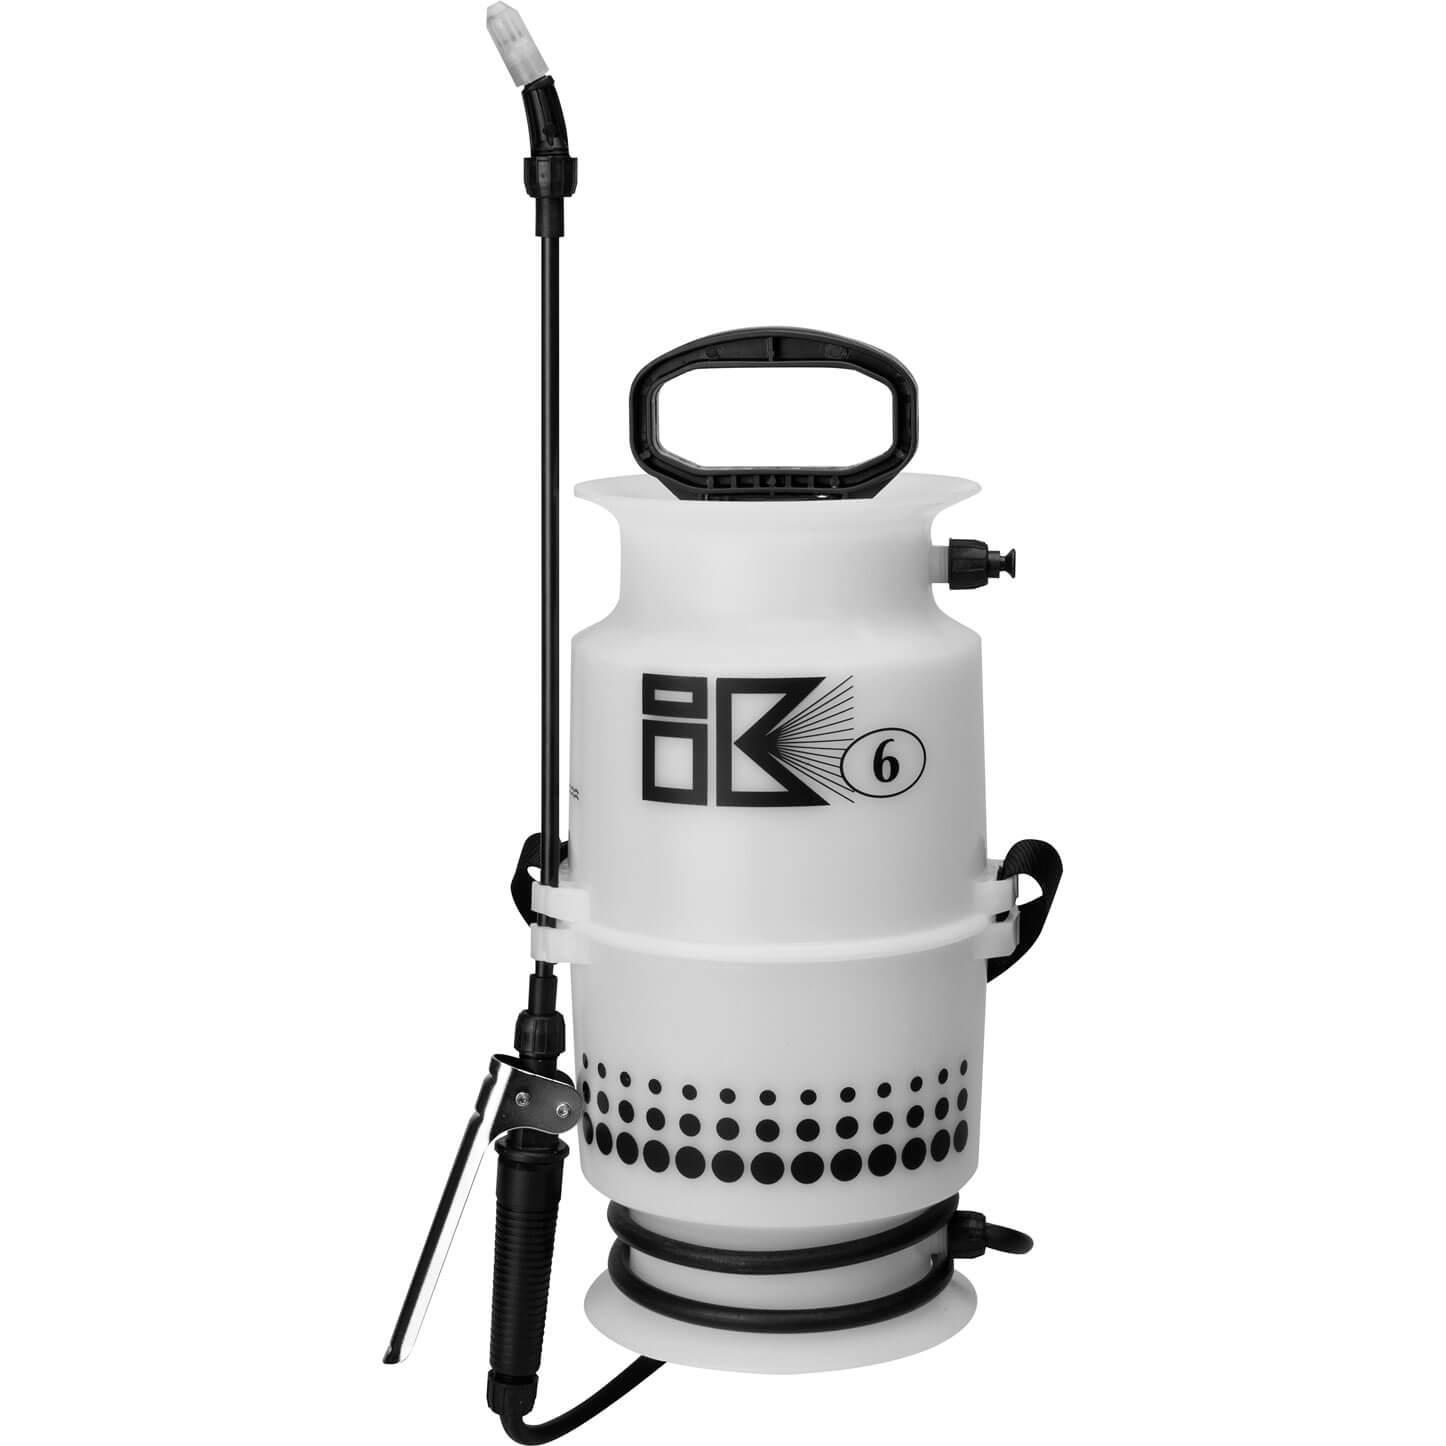 Image of Matabi IK Pressure Water Sprayer 4l